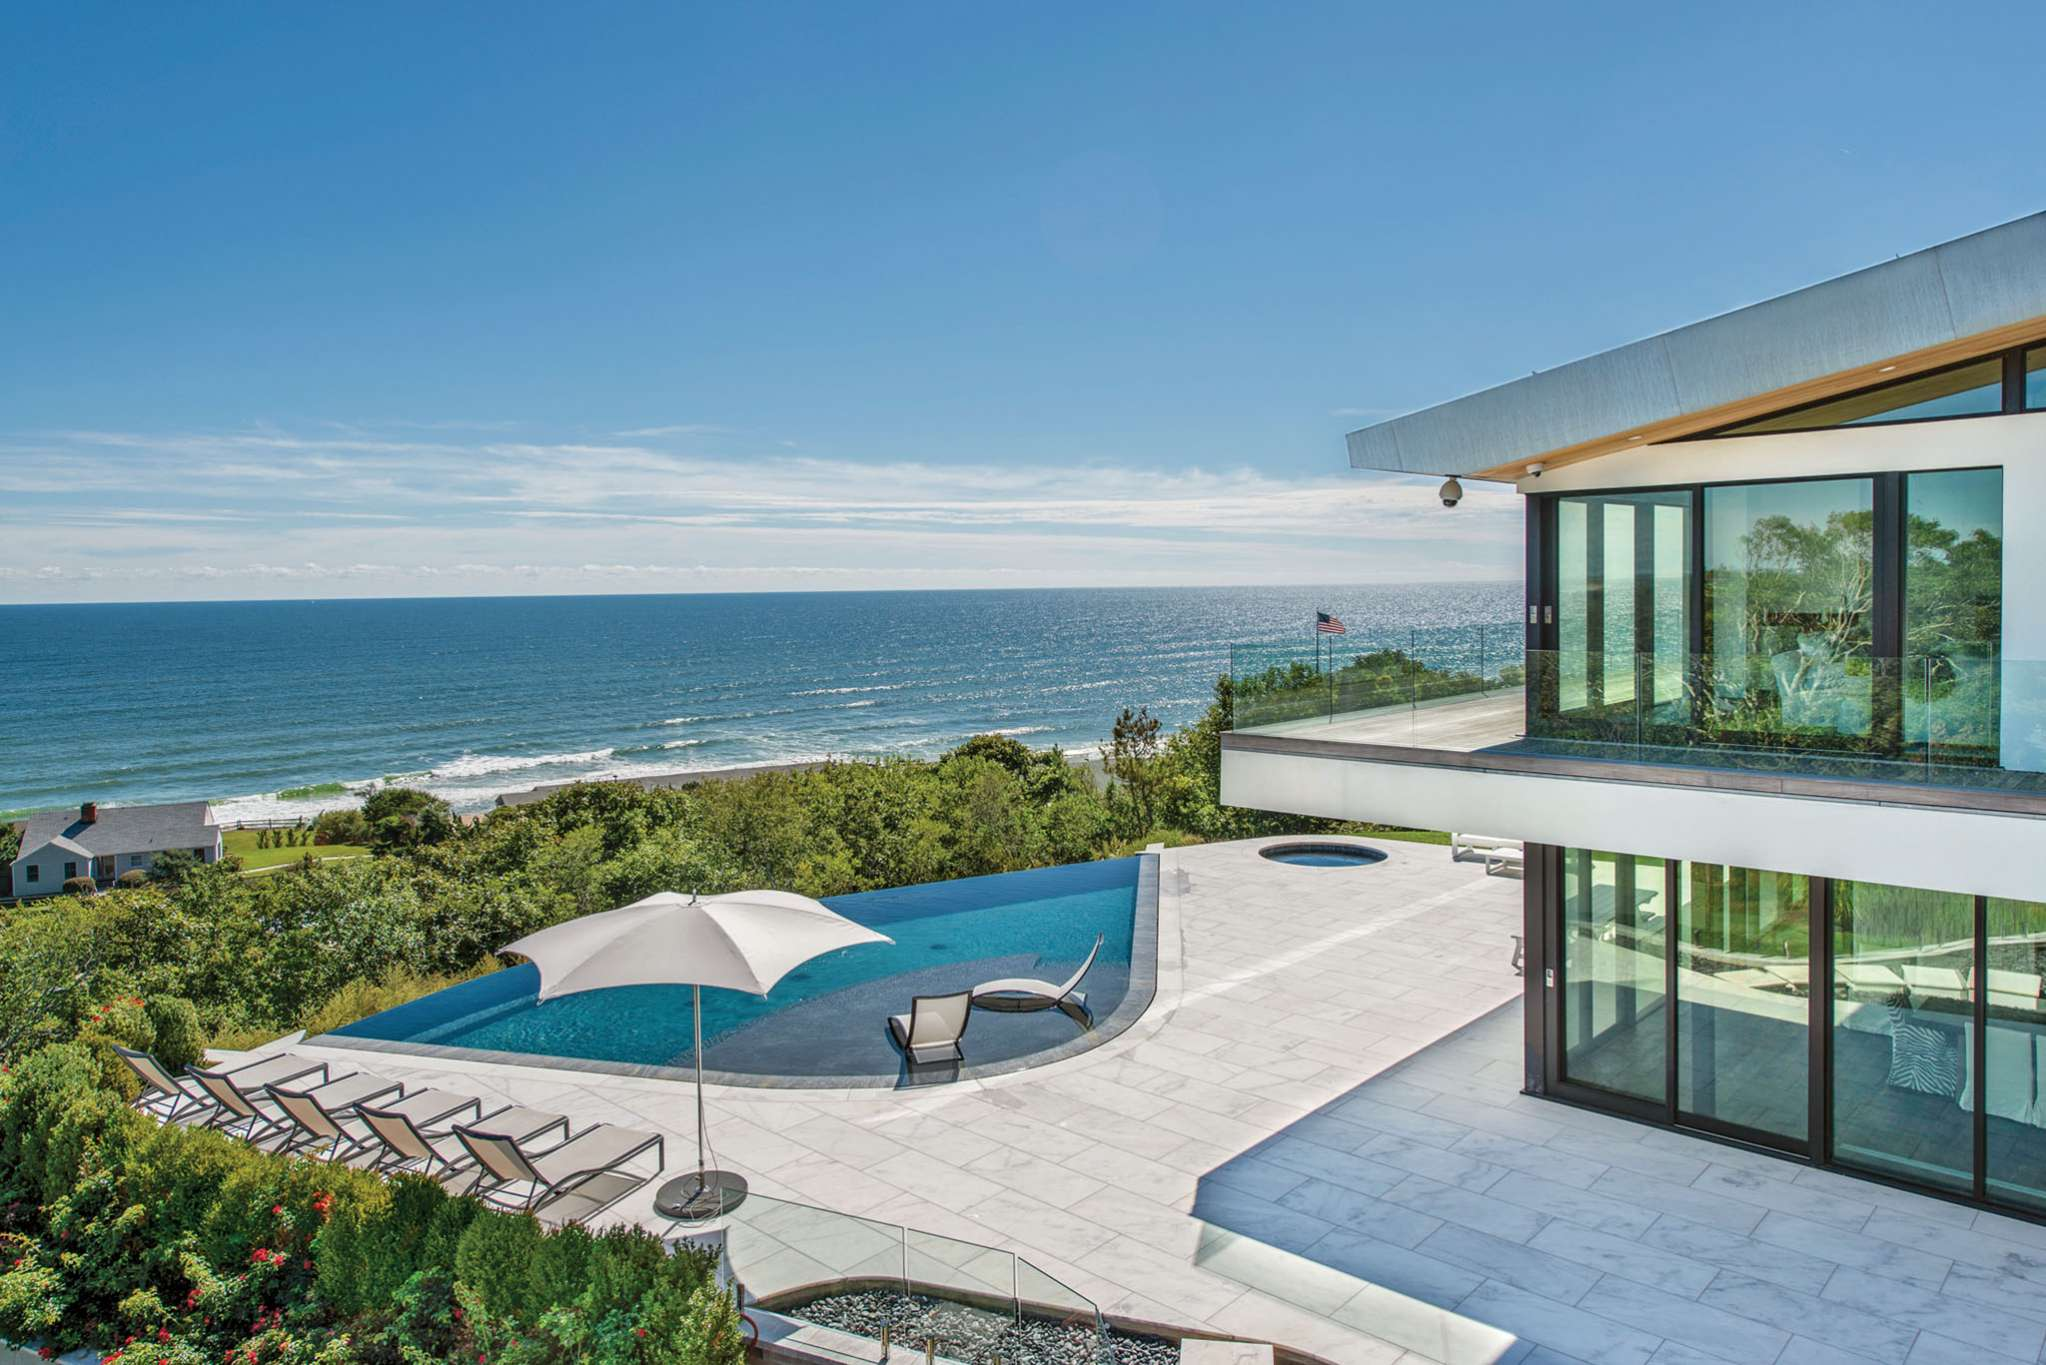 Single Family Home for Sale at New Montauk Modern Masterpiece With Spectacular Ocean Views 14 Maple Street, Montauk, New York